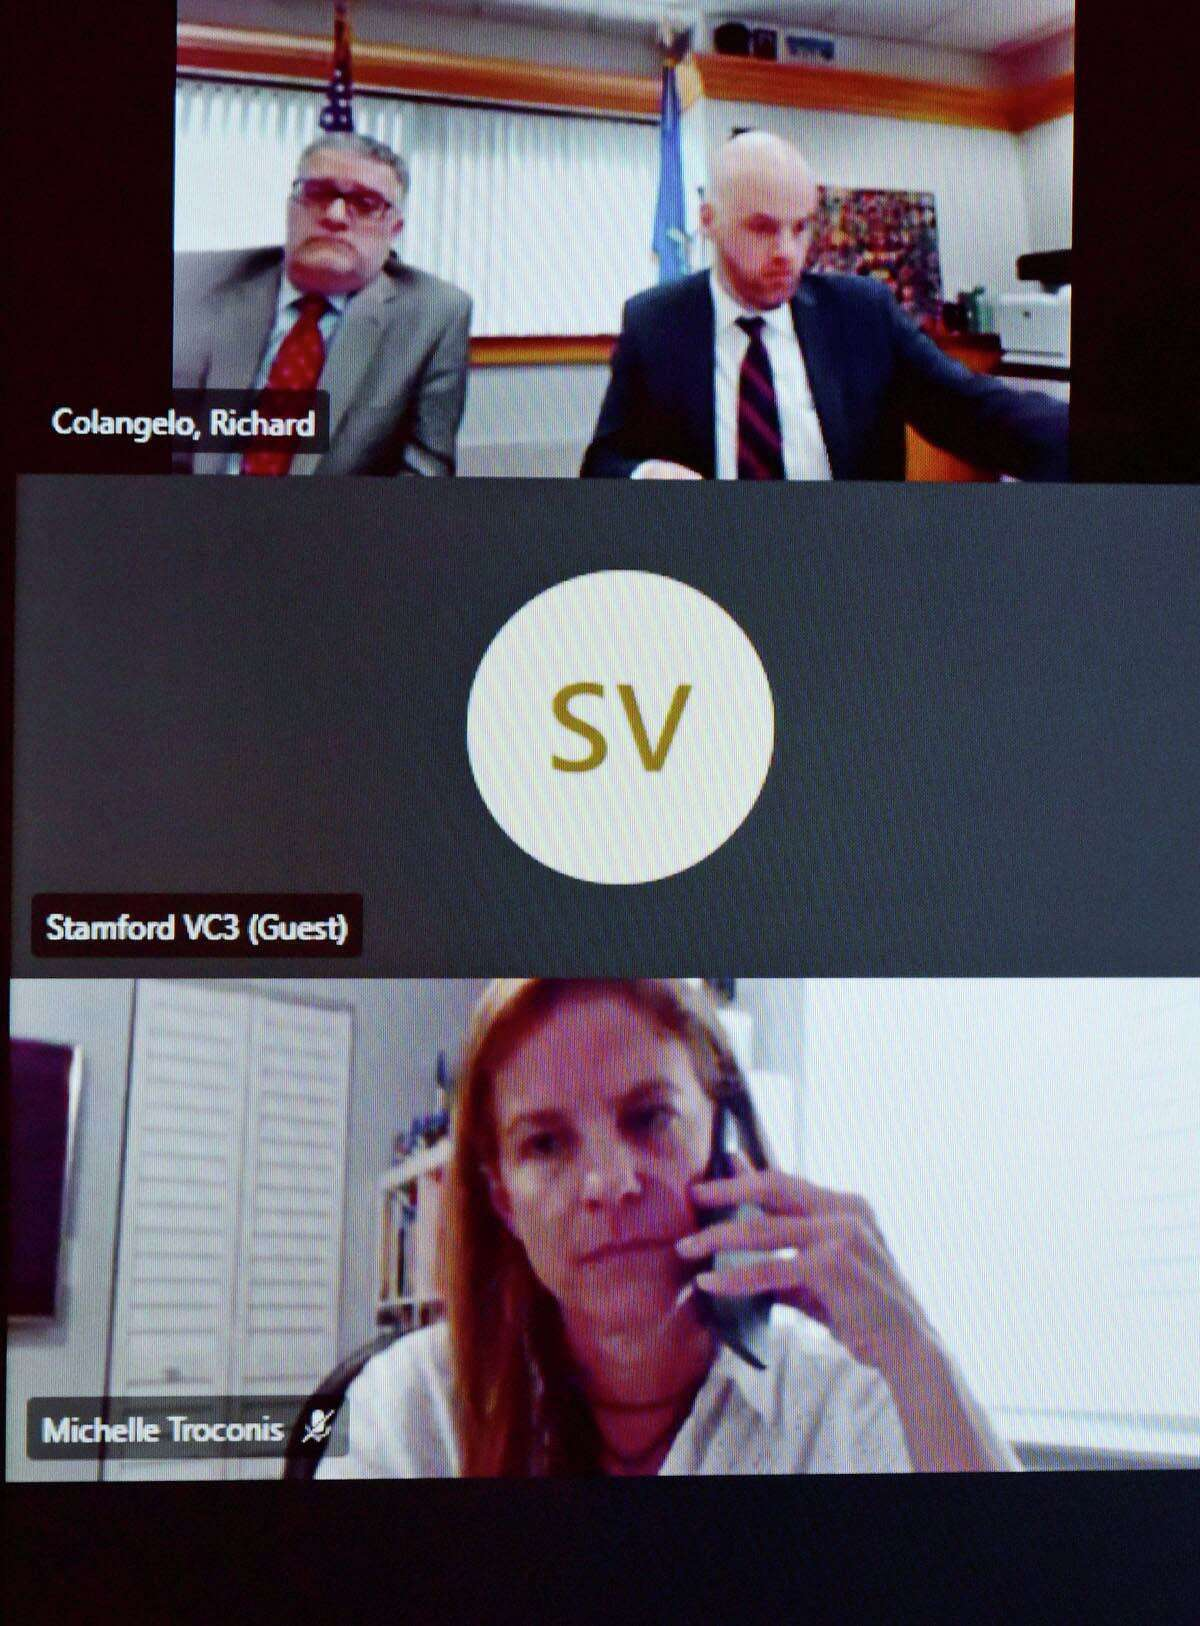 Attorneys and court staff convene via video conference during a hearing for Michelle Troconis on conspiracy to commit murder charge Tuesday, November 24, 2020, at Stamford Superior Court in Stamford, Conn. Troconis was charged in connection with the murder of New Canaan resident Jennifer Dulos.